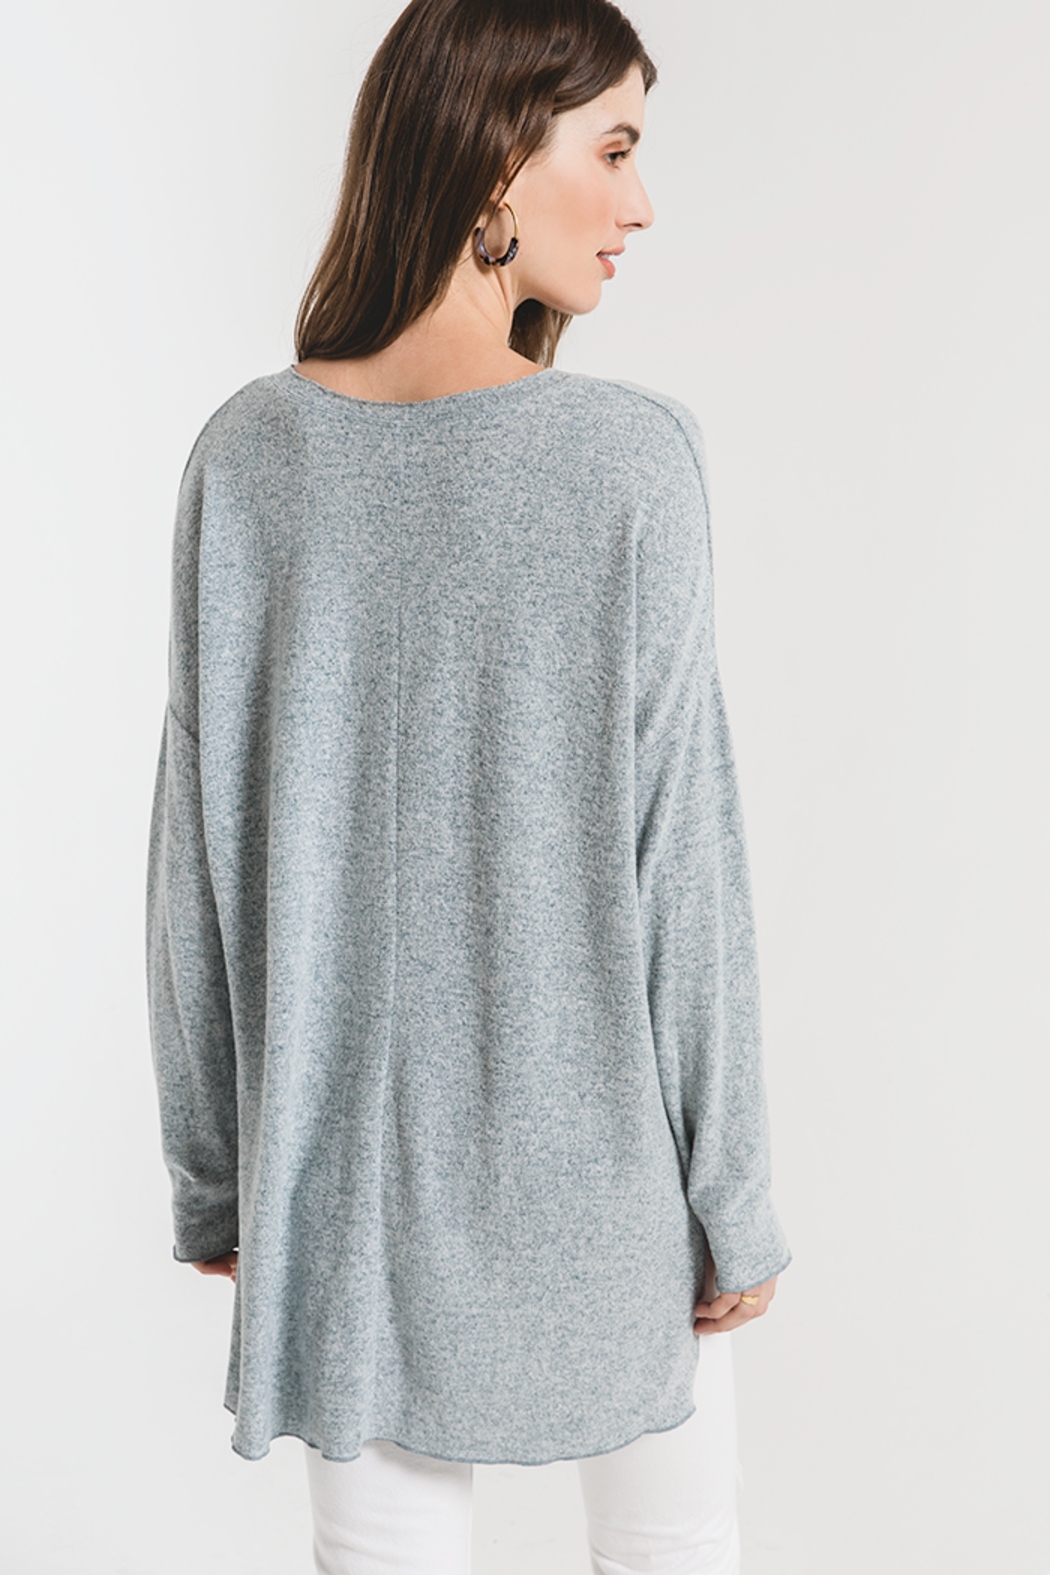 z supply THe Marled Sweater - Front Full Image